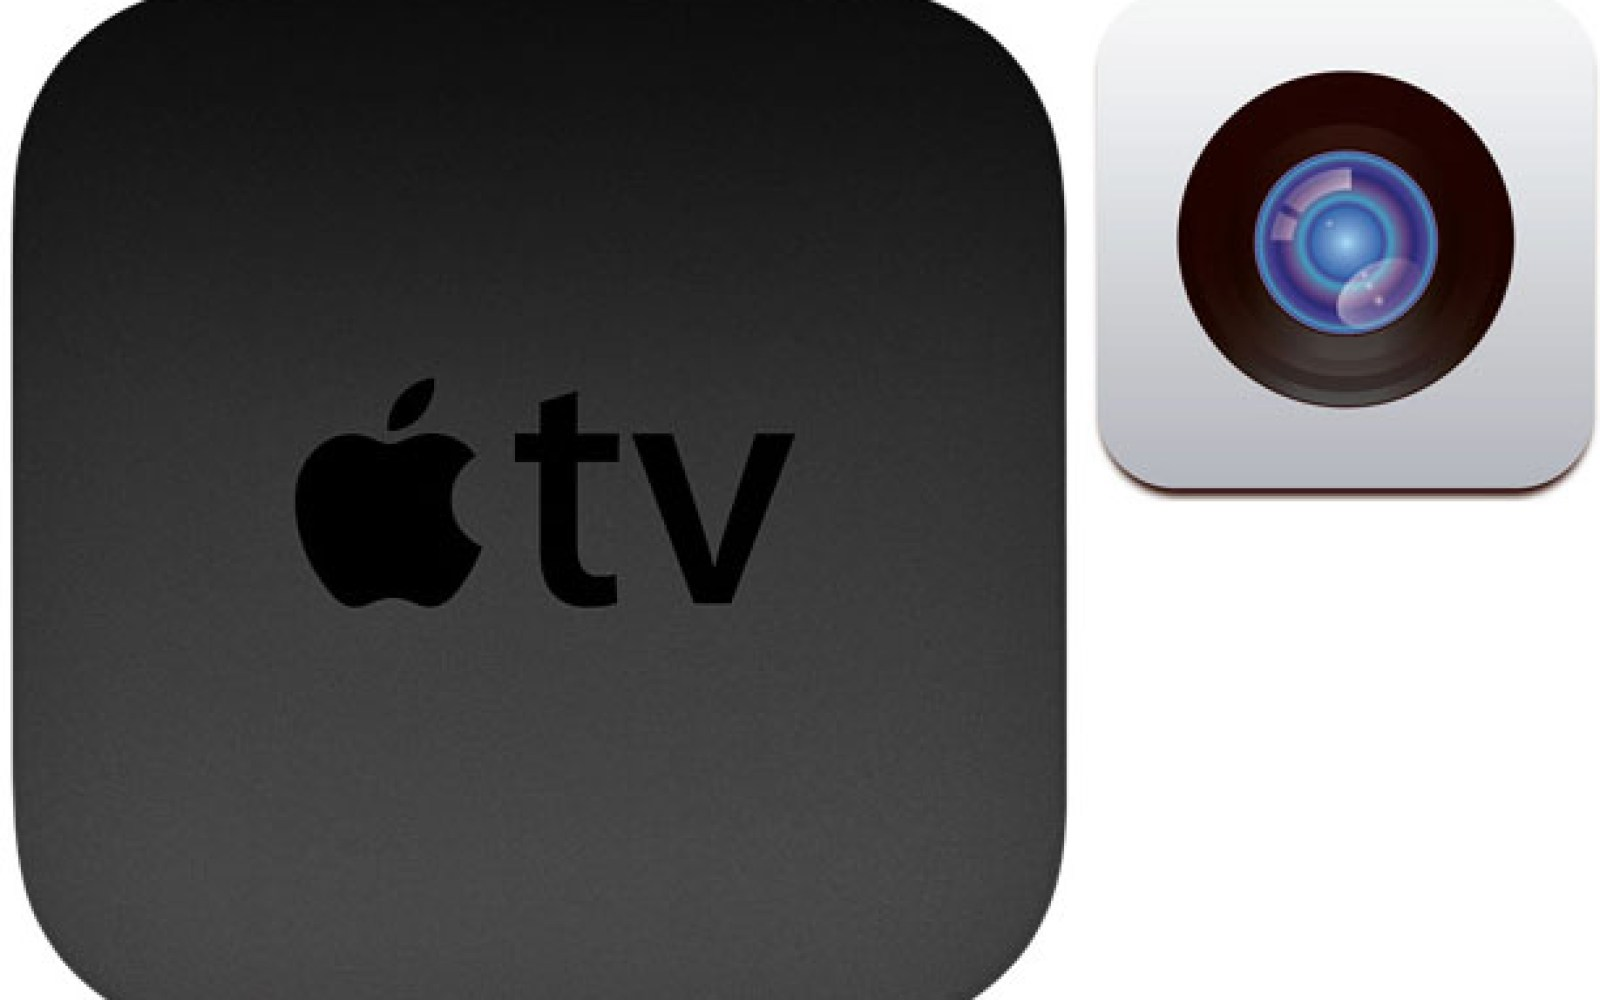 Debunk: Job listing doesn't indicate Apple TV getting a camera